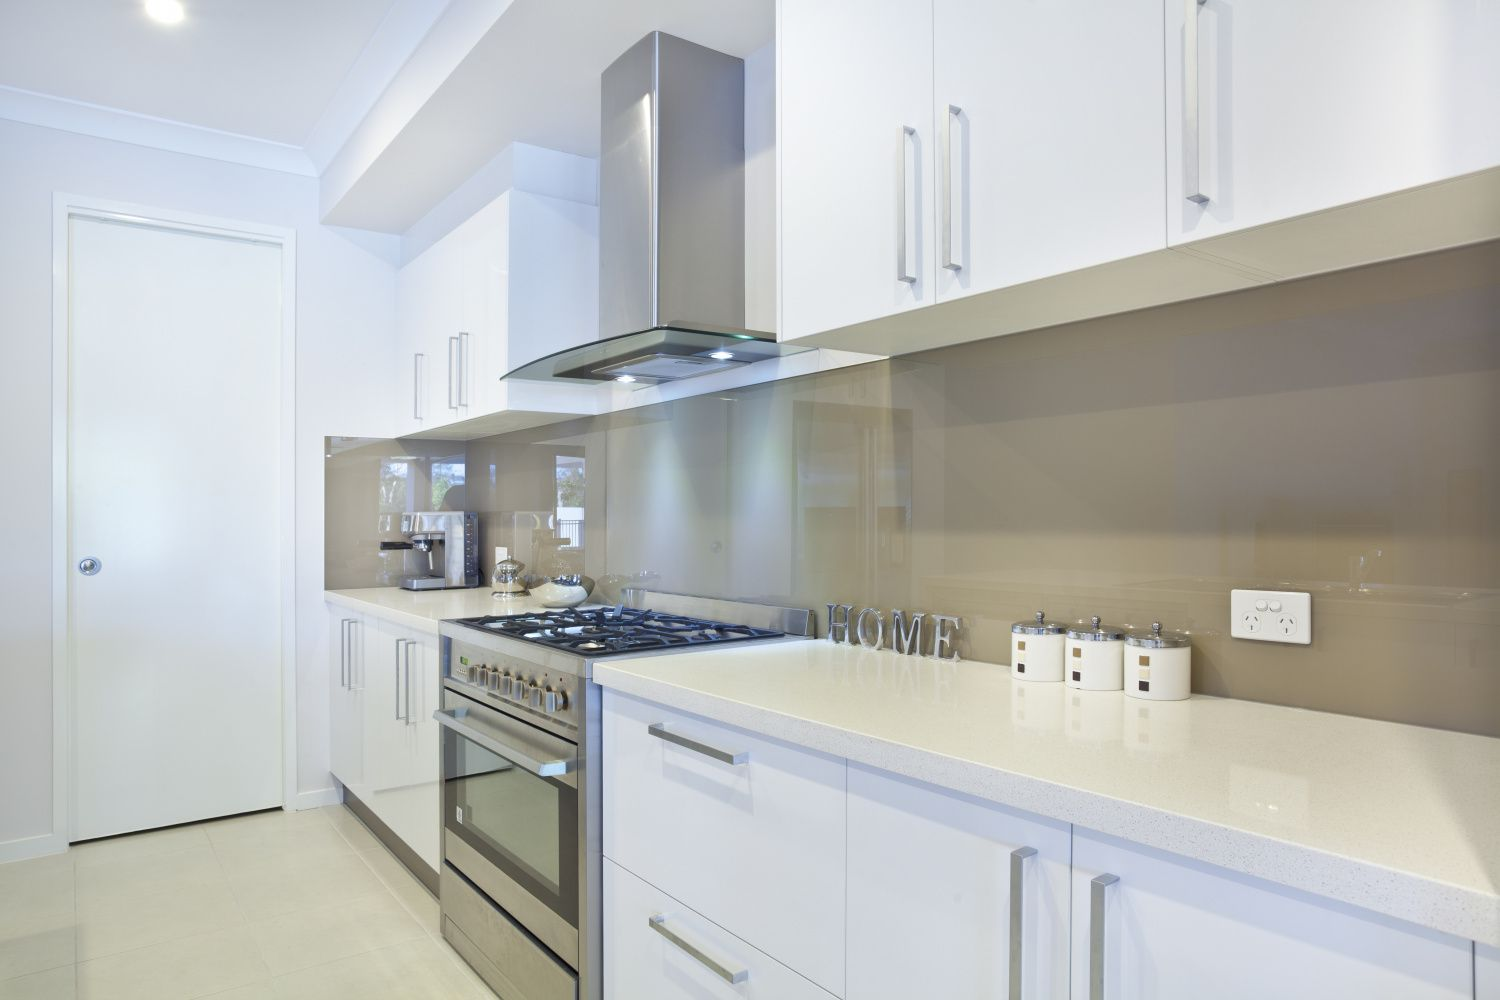 Flatpack, Pre-assembled, or Custom Kitchen: Which is best for you?